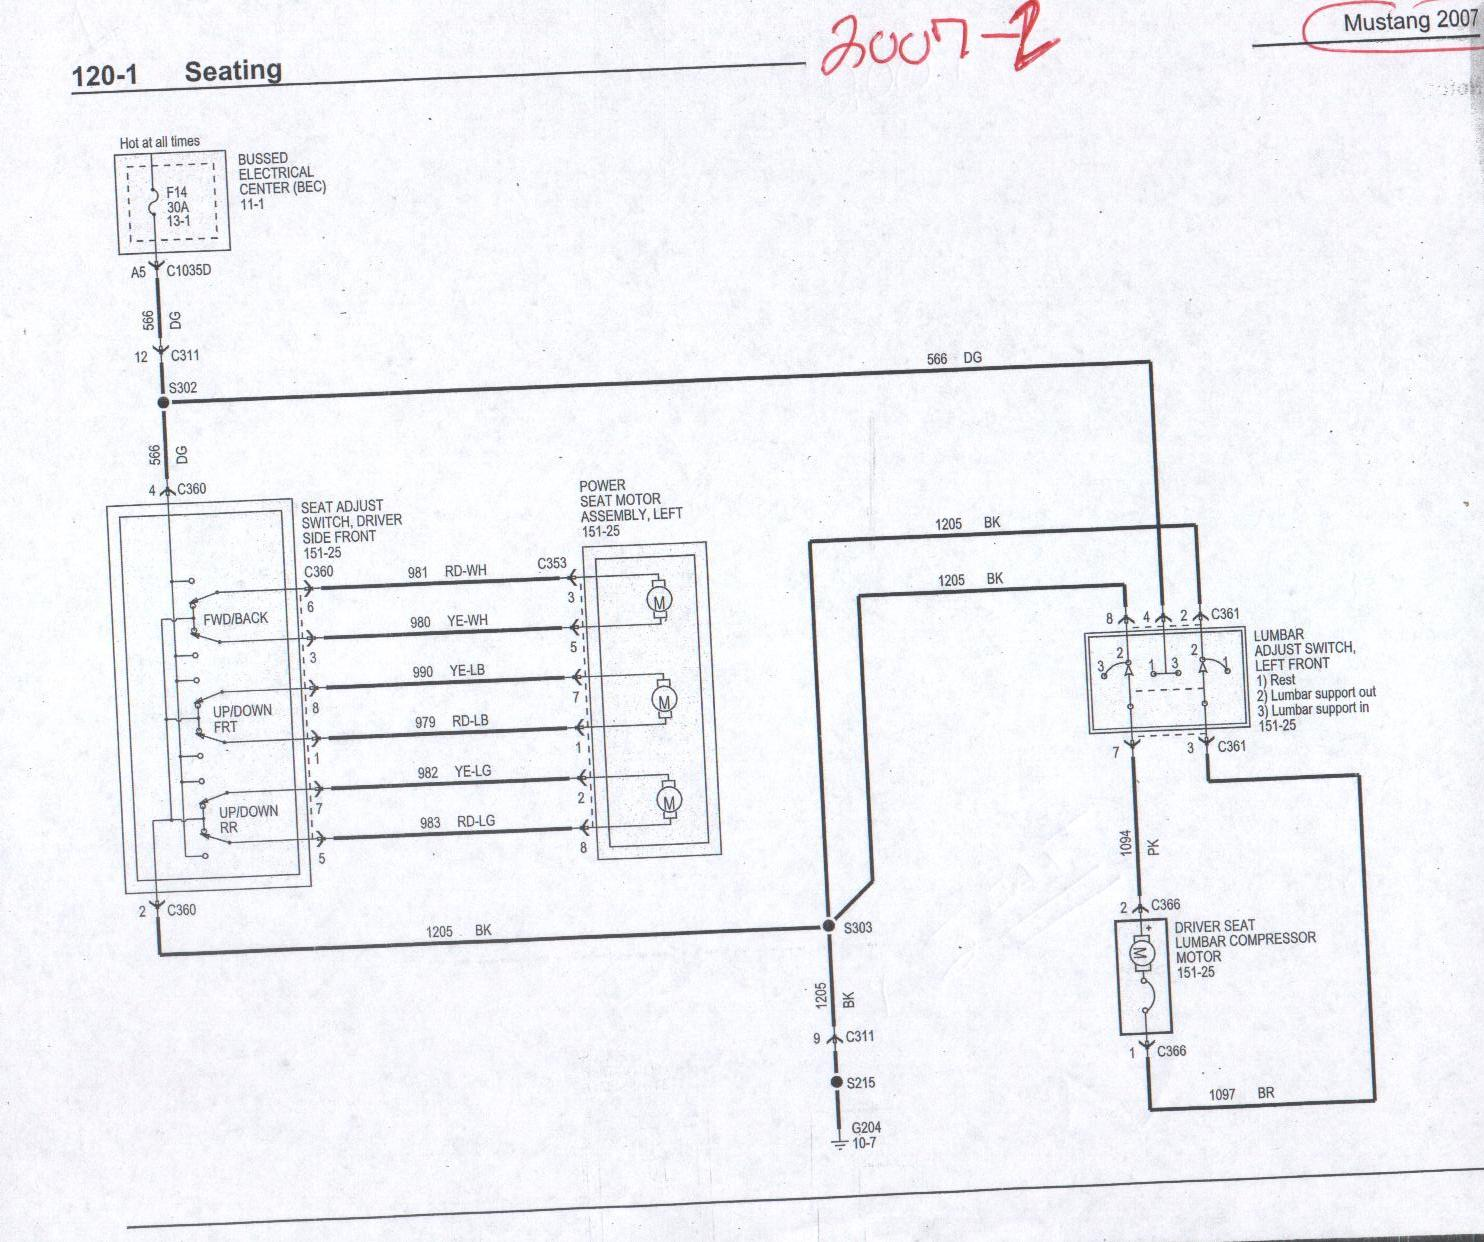 hight resolution of 2005 mustang power seat wiring wiring diagram 2005 mustang power seat wiring